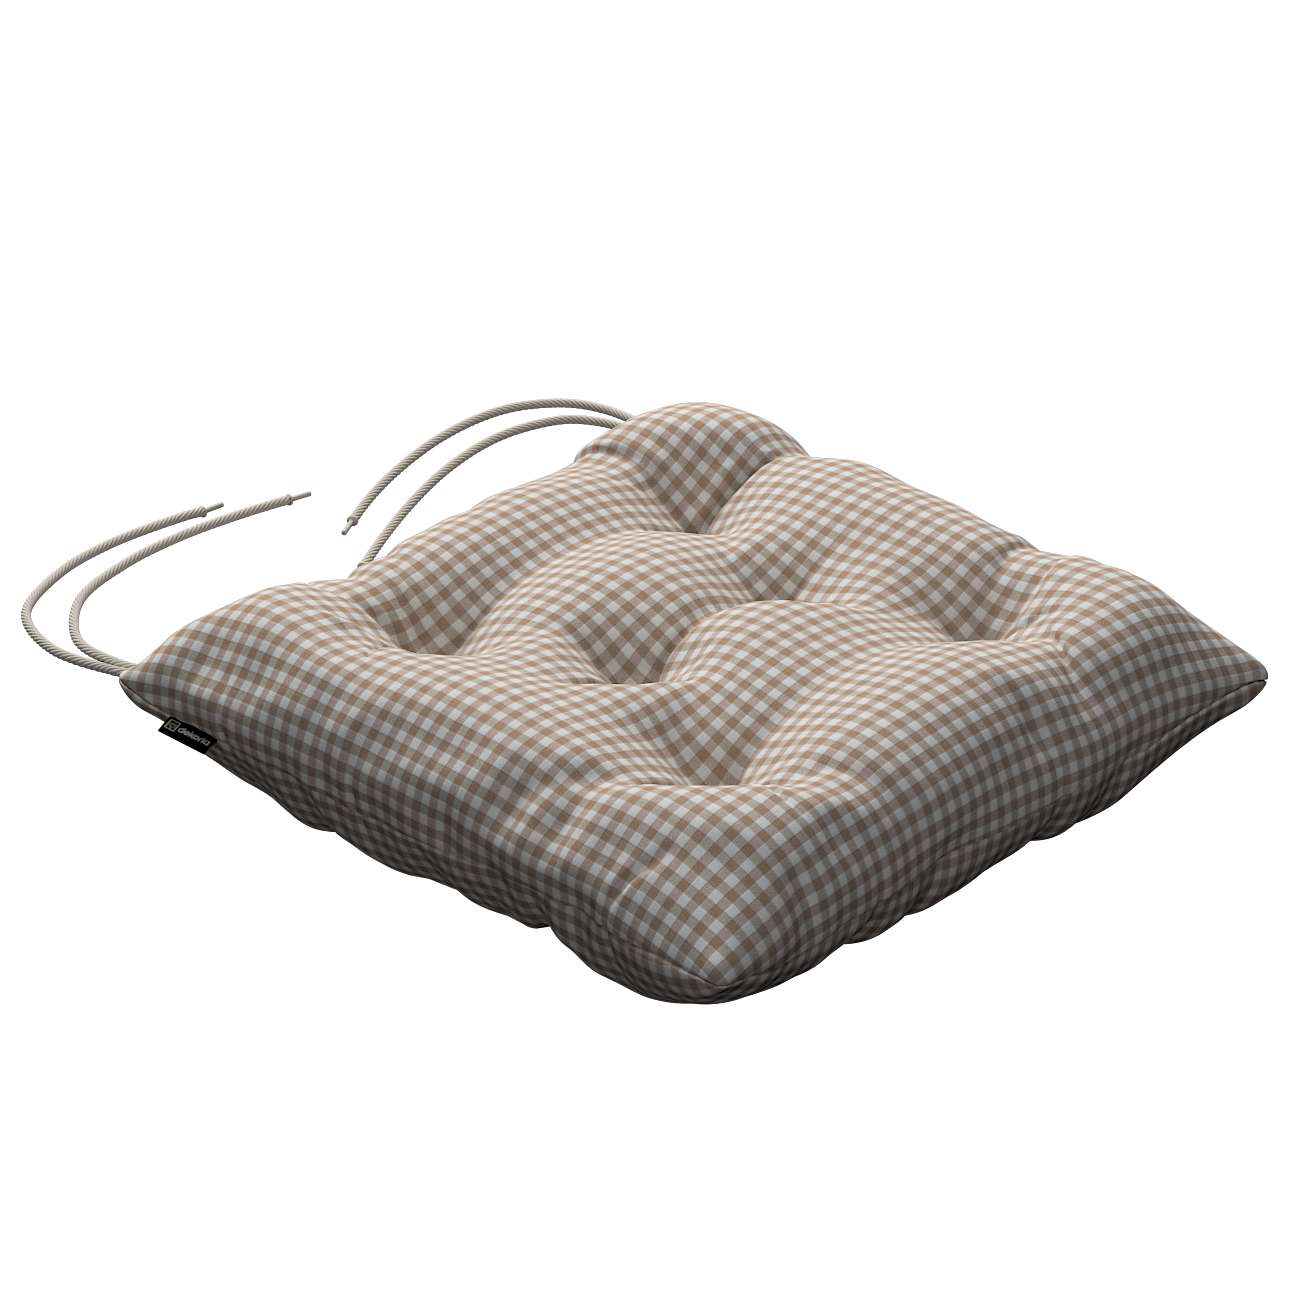 Jacek seat pad with ties 40 x 40 x 8 cm (16 x 16 x 3 inch) in collection Quadro, fabric: 136-05